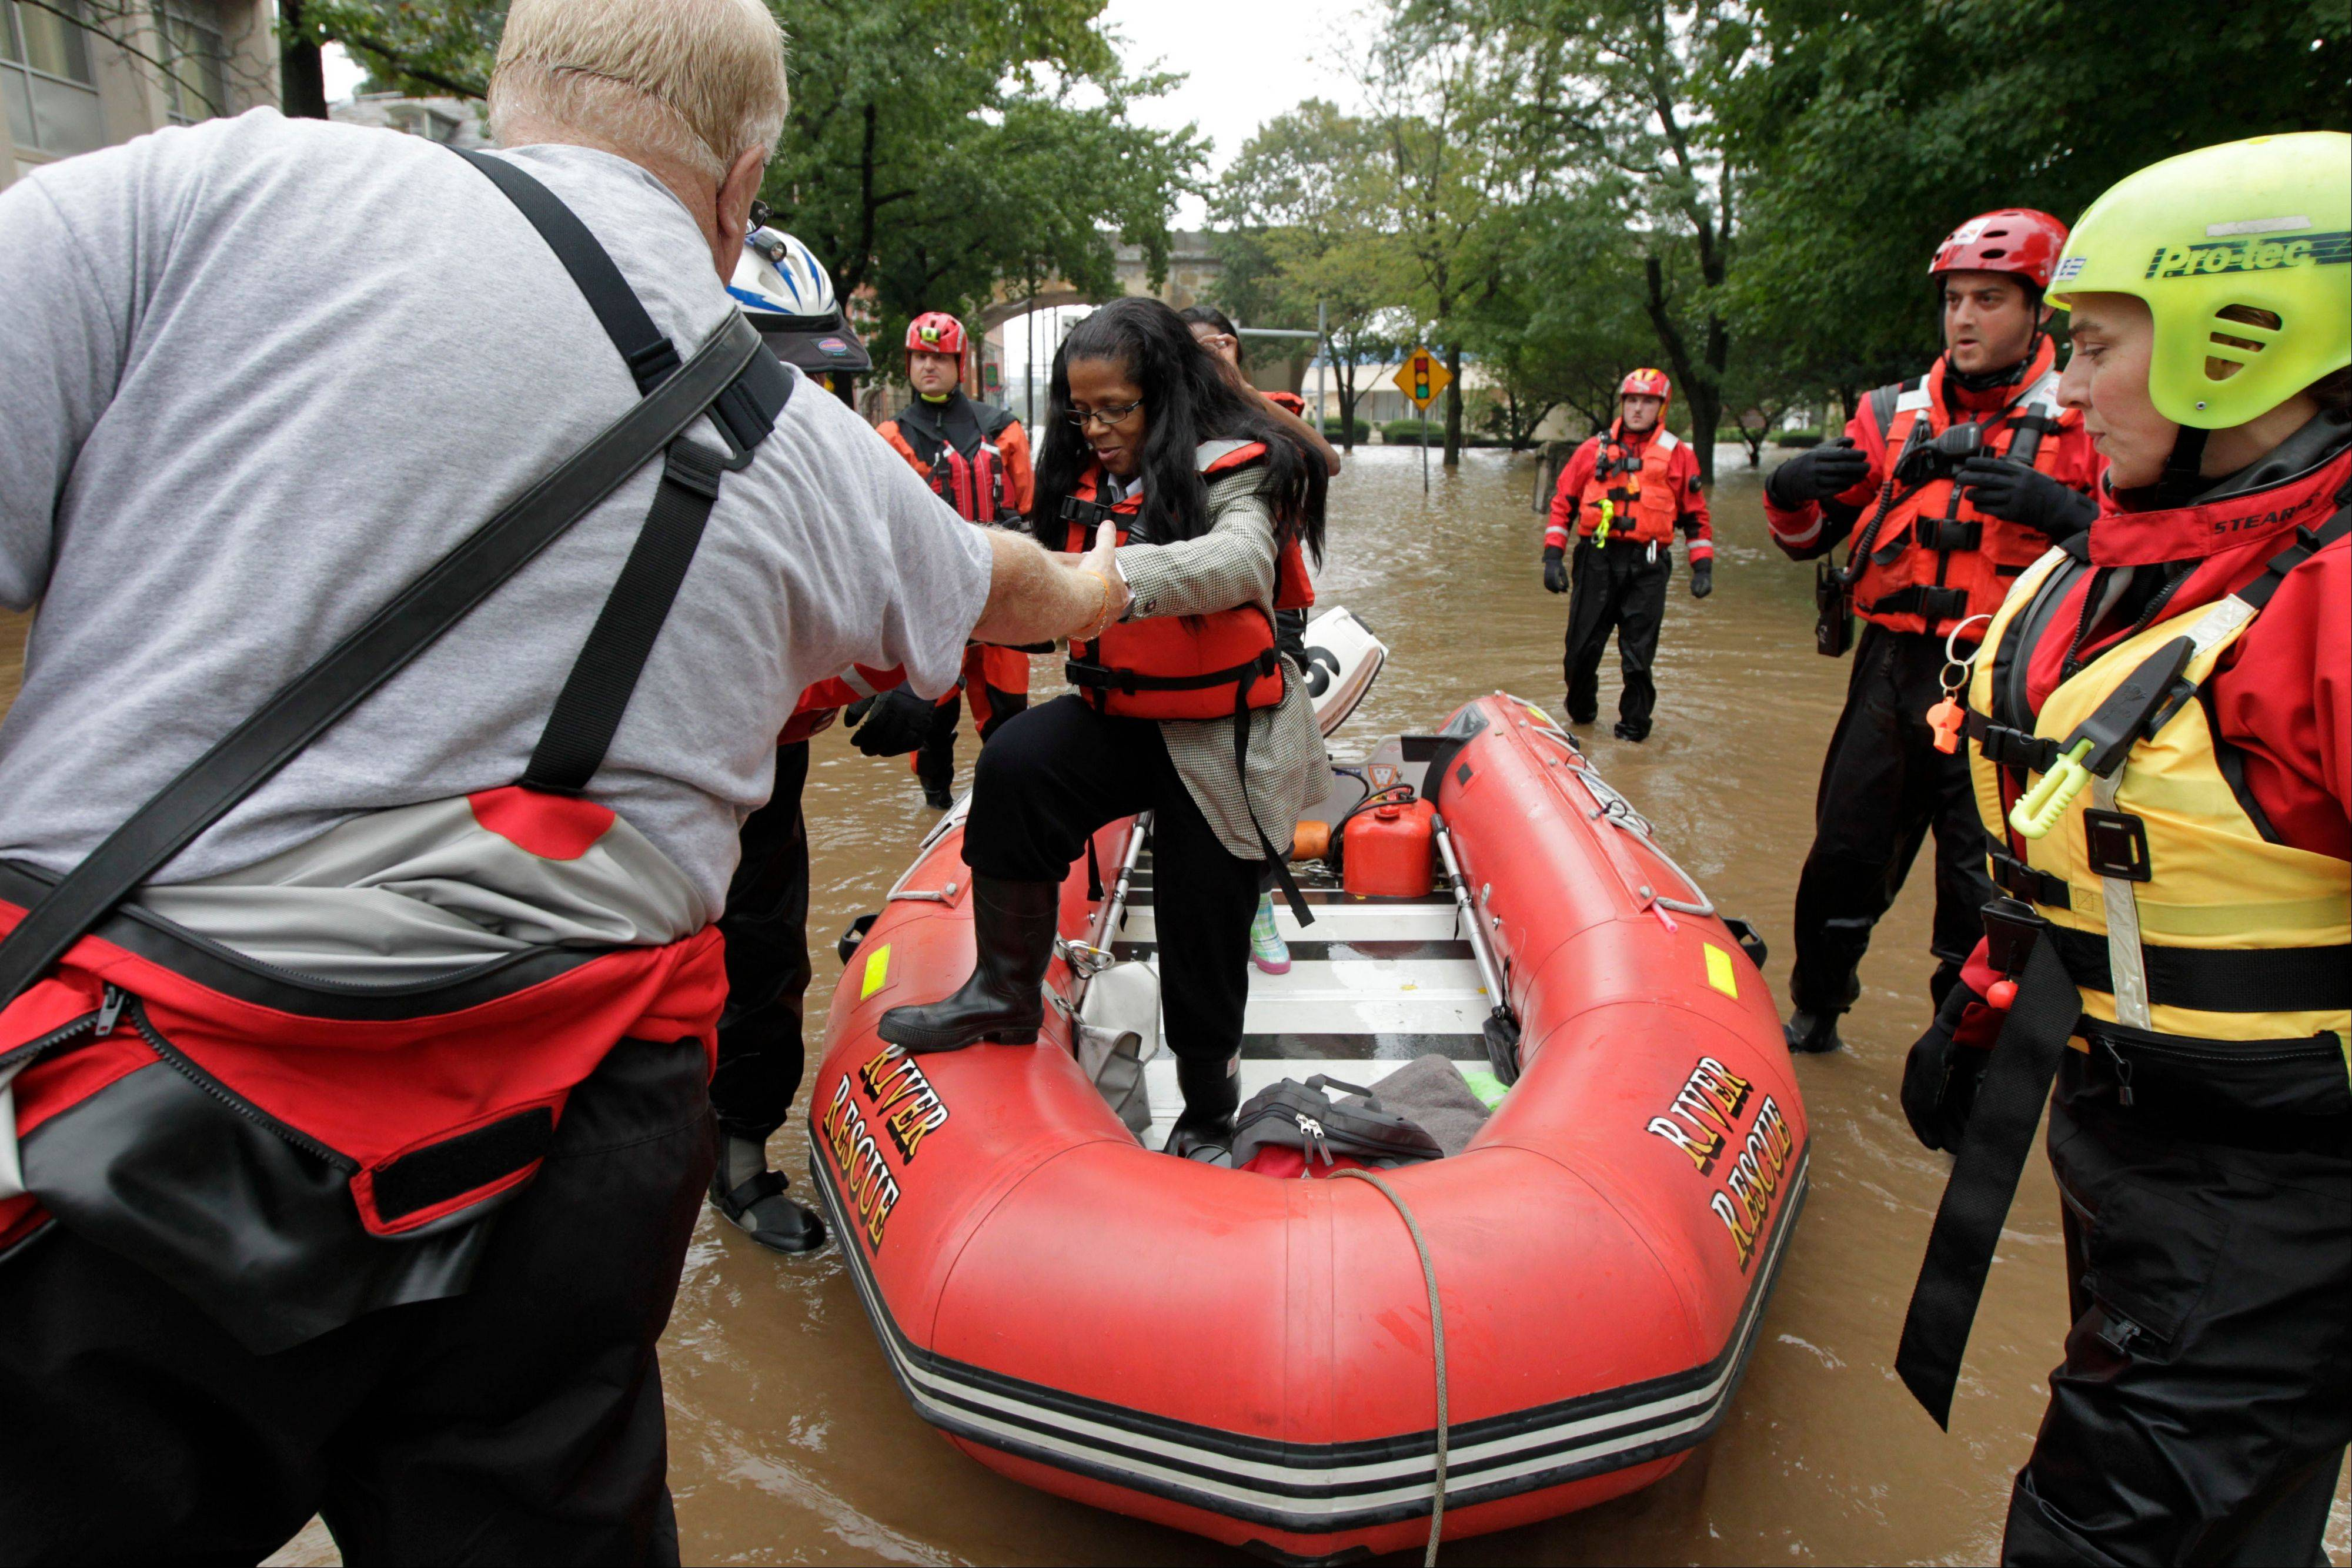 Members of the Harrisburg River Rescue help Mayor Linda Thompson out of the boat after going to the flooded Shipoke area during flooding caused by rainfall from the remnants of Tropical Storm Lee in Harrisburg, Pa.